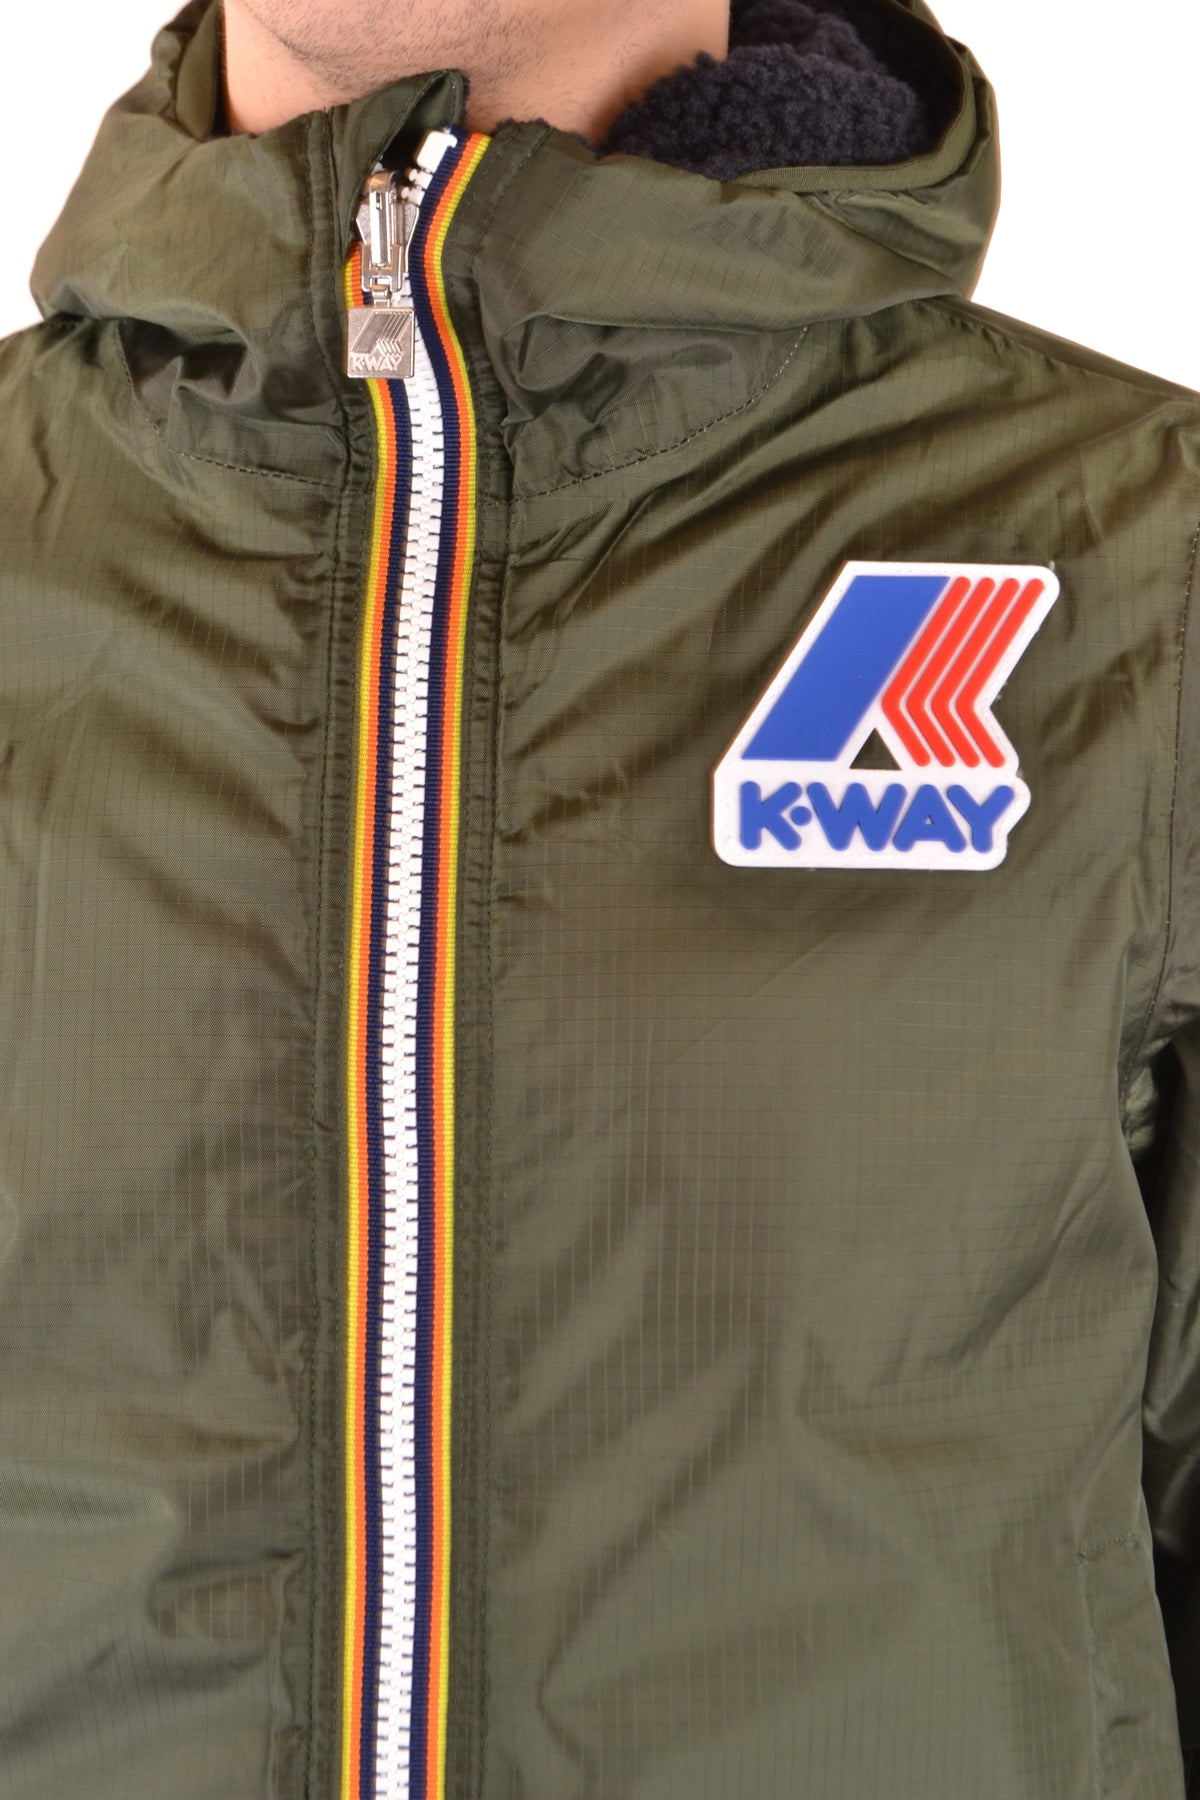 Jacket K-Way-Men's Fashion - Men's Clothing - Jackets & Coats - Jackets-Product Details Manufacturer Part Number: K009M90Year: 2018Composition: Polyamide 100%Size: IntGender: ManMade In: ChinaSeason: Fall / WinterMain Color: Military GreenClothing Type: BlousonTerms: New With Label-Keyomi-Sook